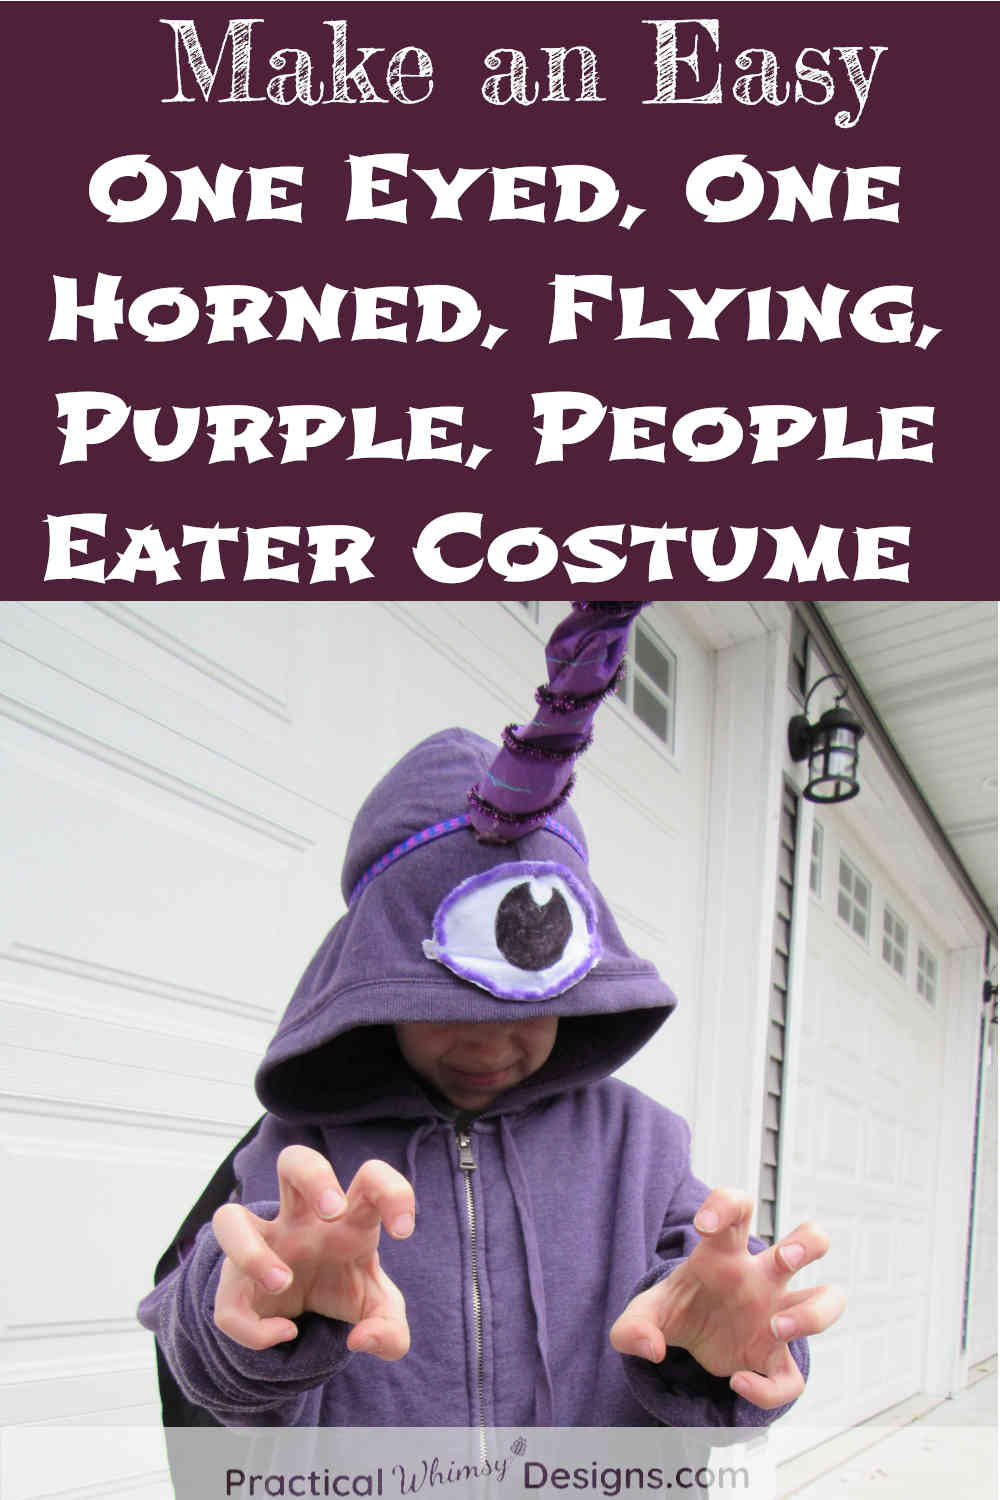 Little boy in DIY One Eyed, One Horned, Flying, Purple, People Eater Costume